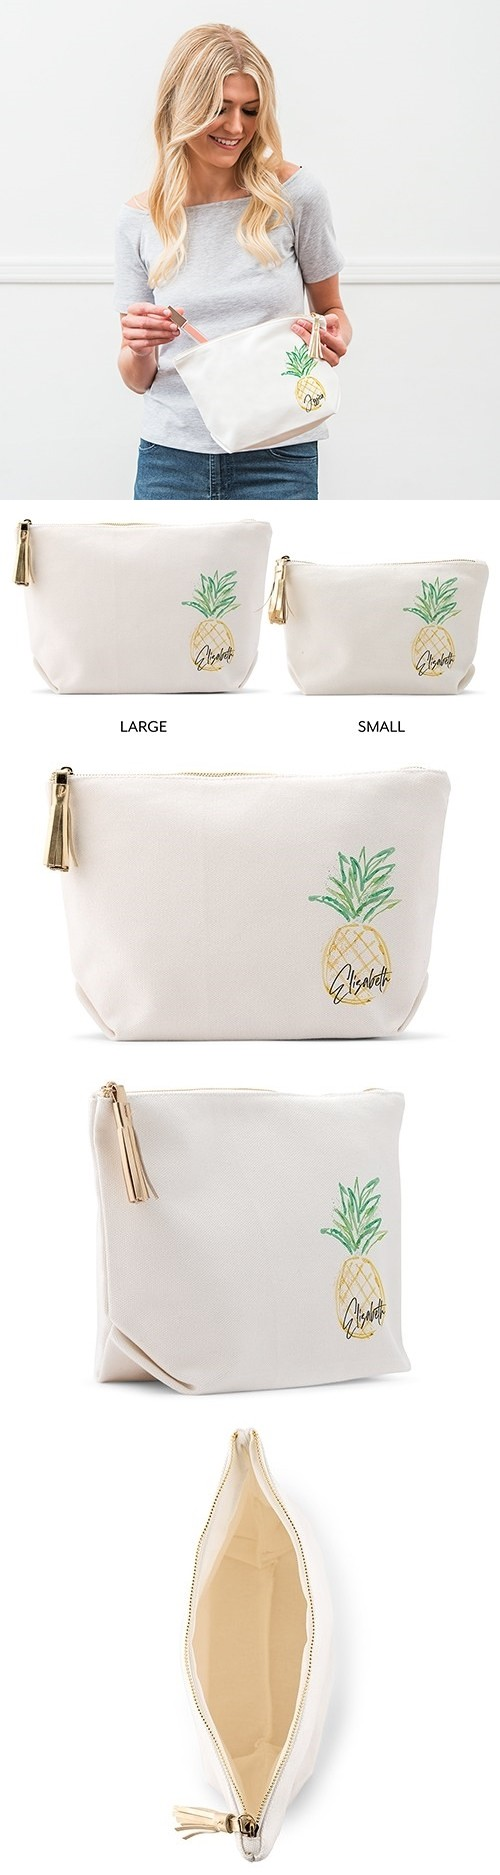 Weddingstar Personalized White Canvas Makeup Bag - Pineapple Design